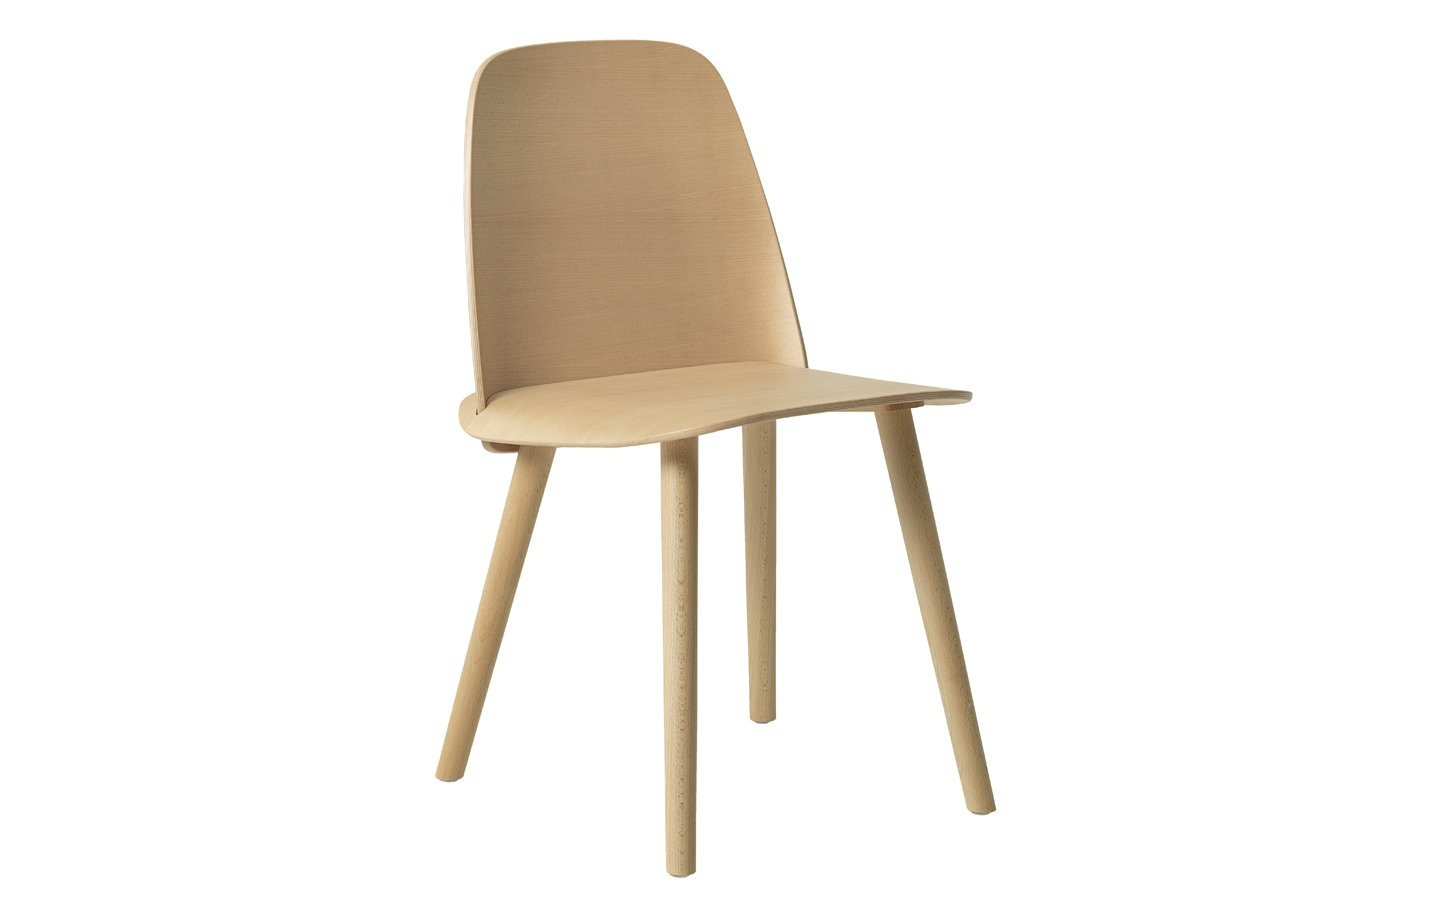 Nerd chair – Beech